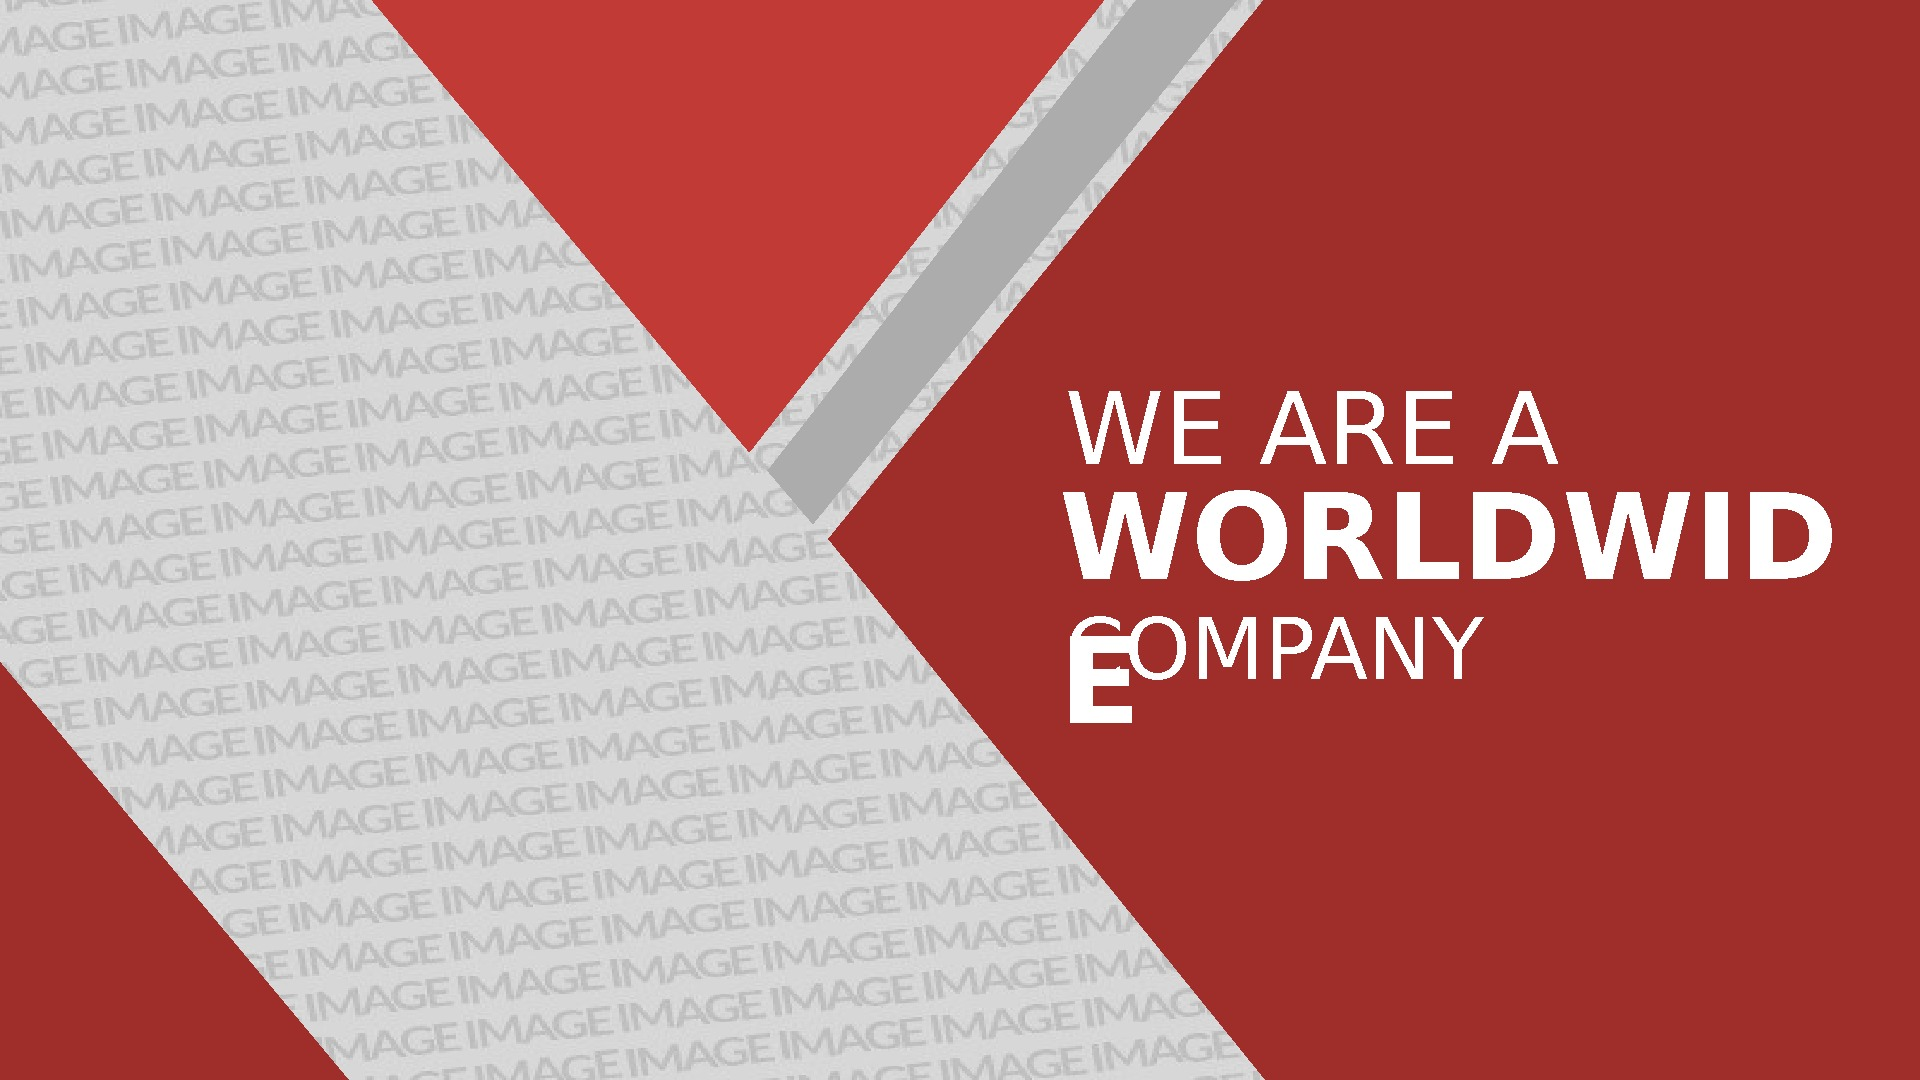 WE ARE A WORLDWID E COMPANY